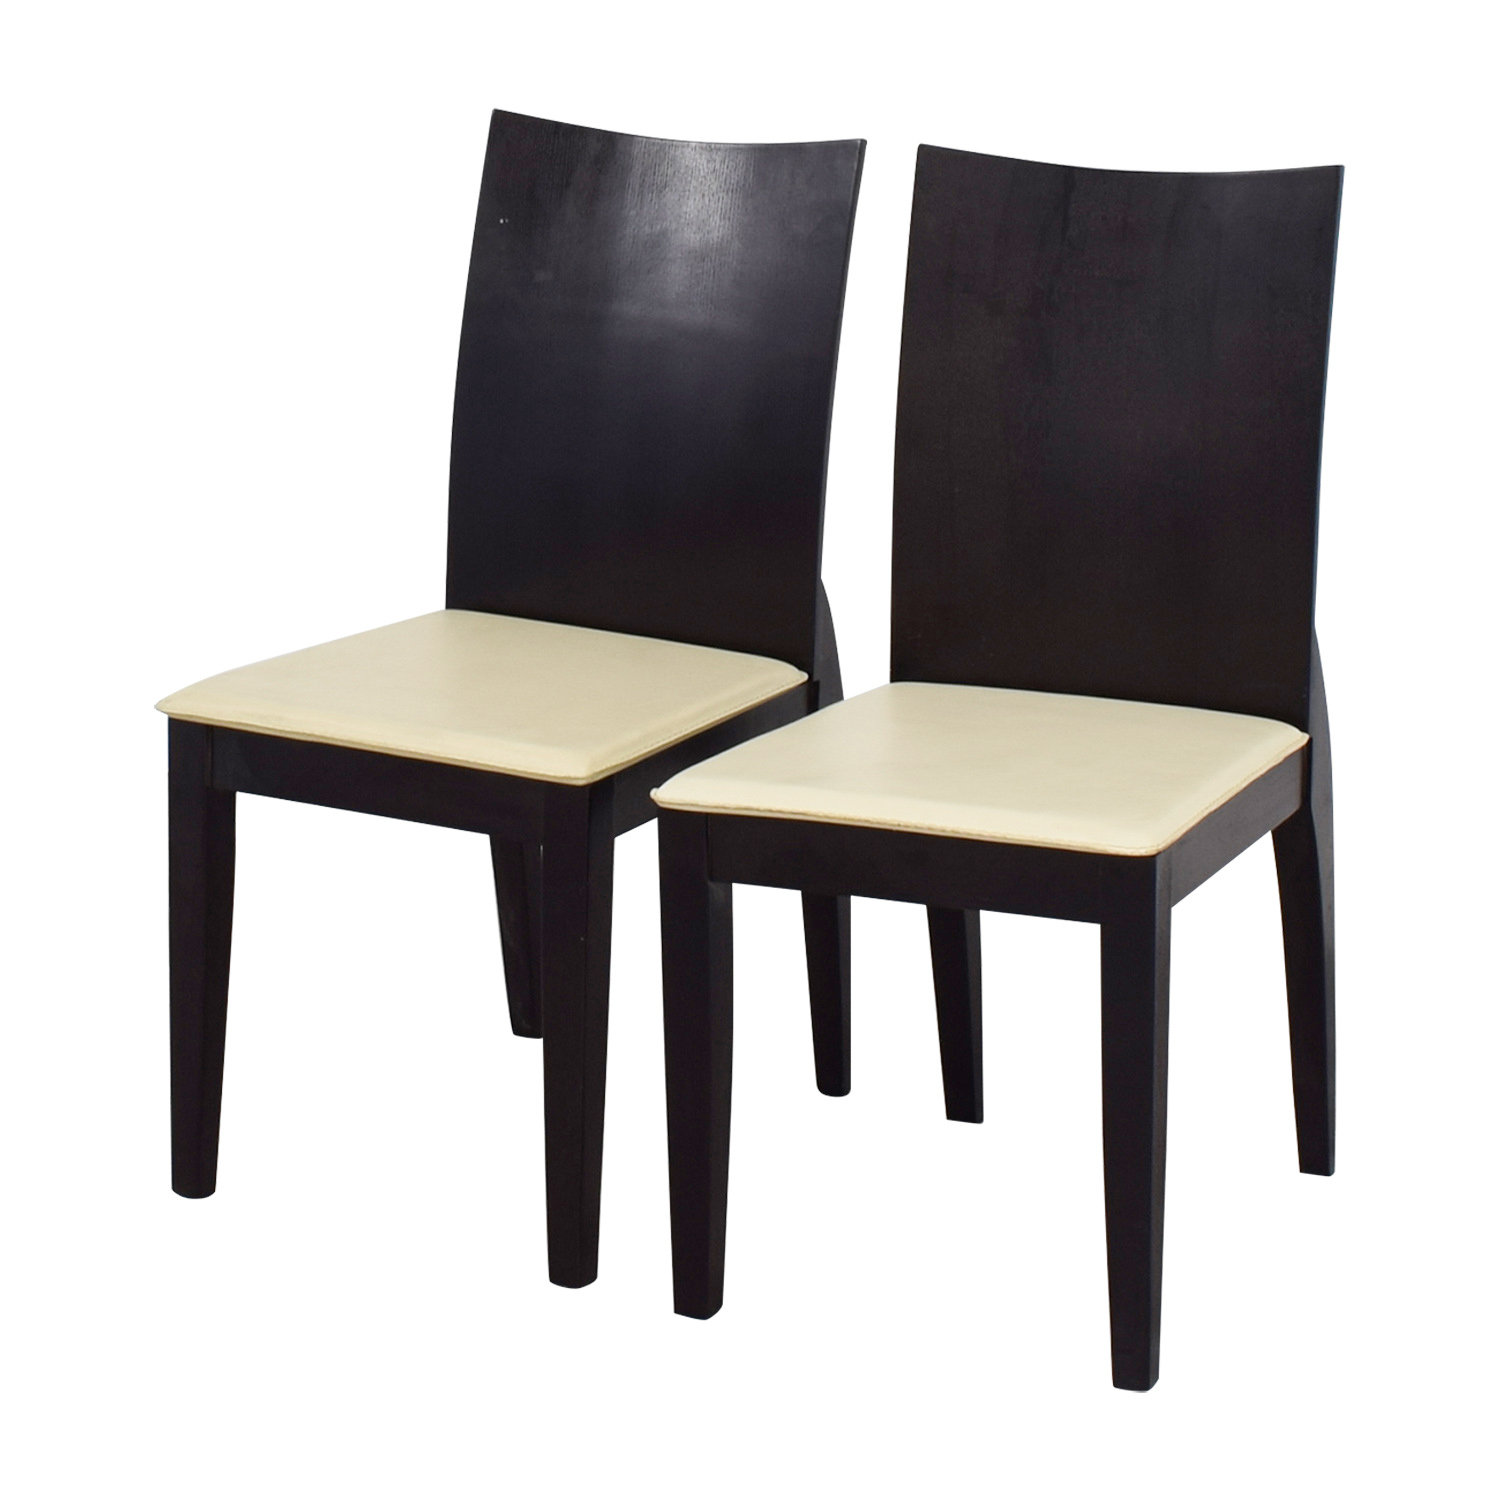 Dining Chairs in Wenge Frame